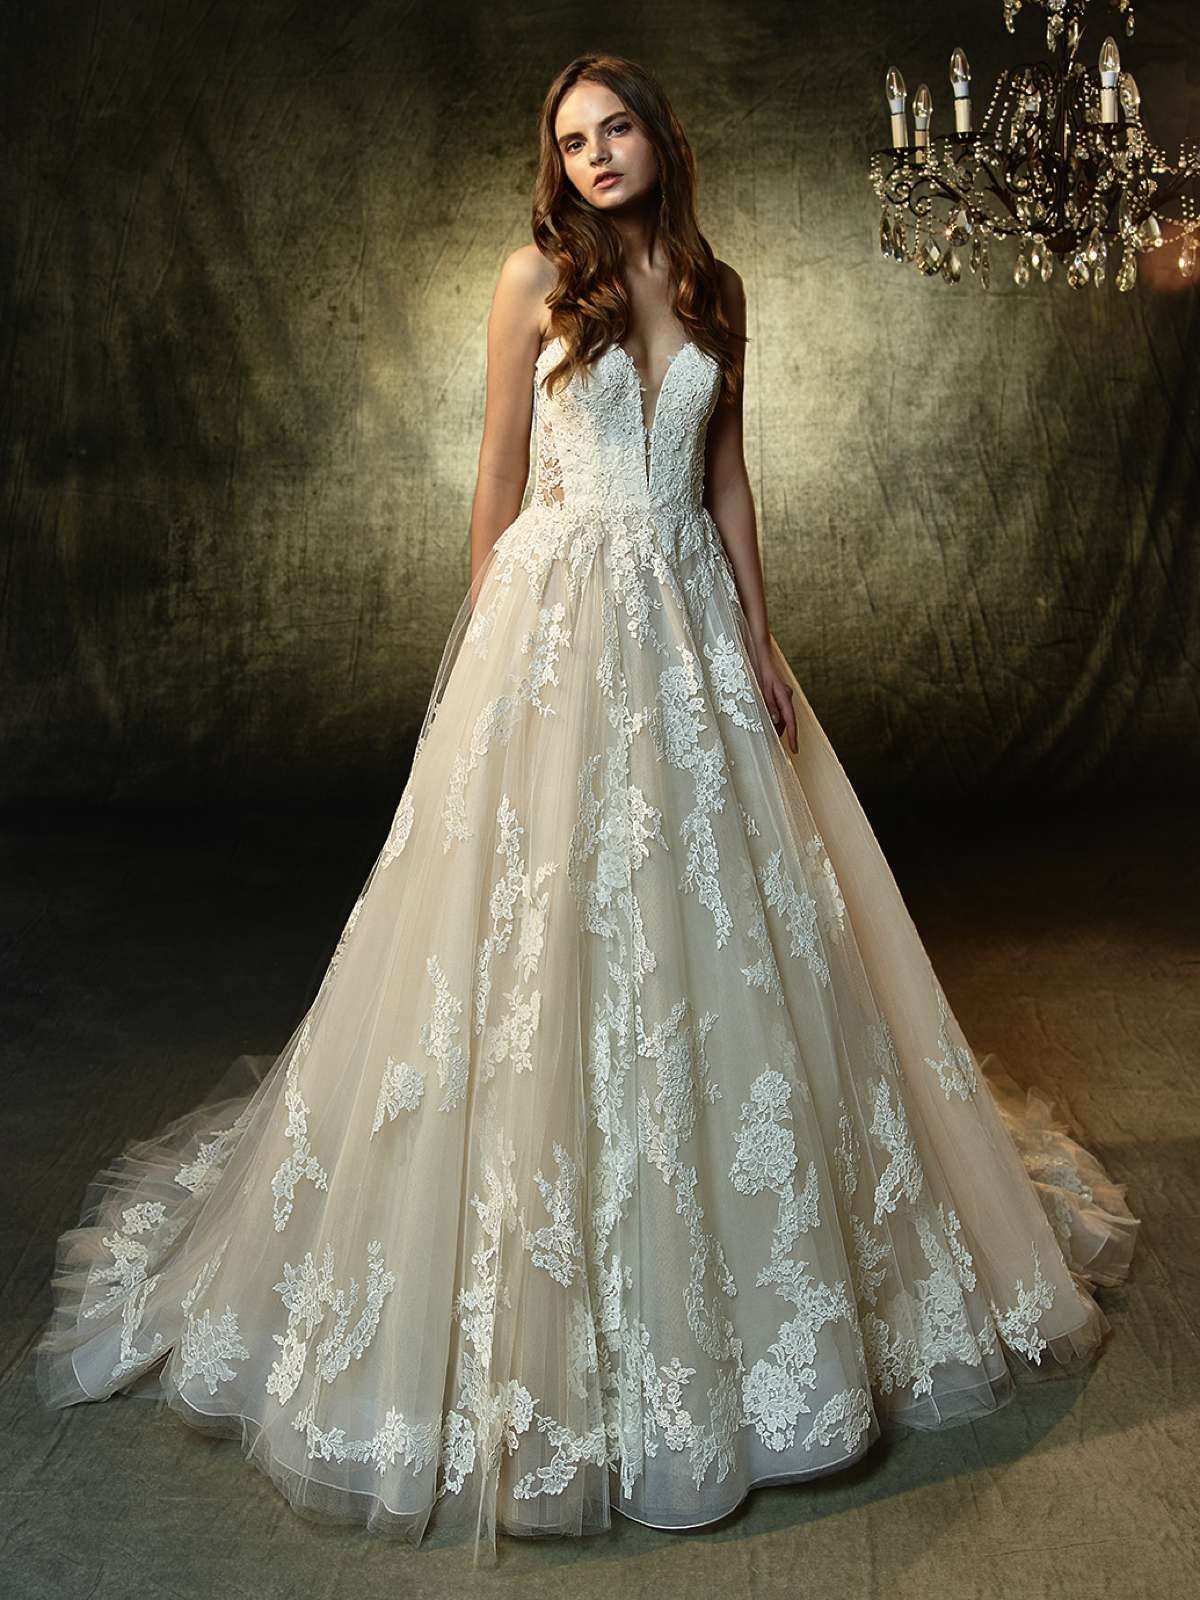 Romantic wedding gowns from Blue by Enzoani